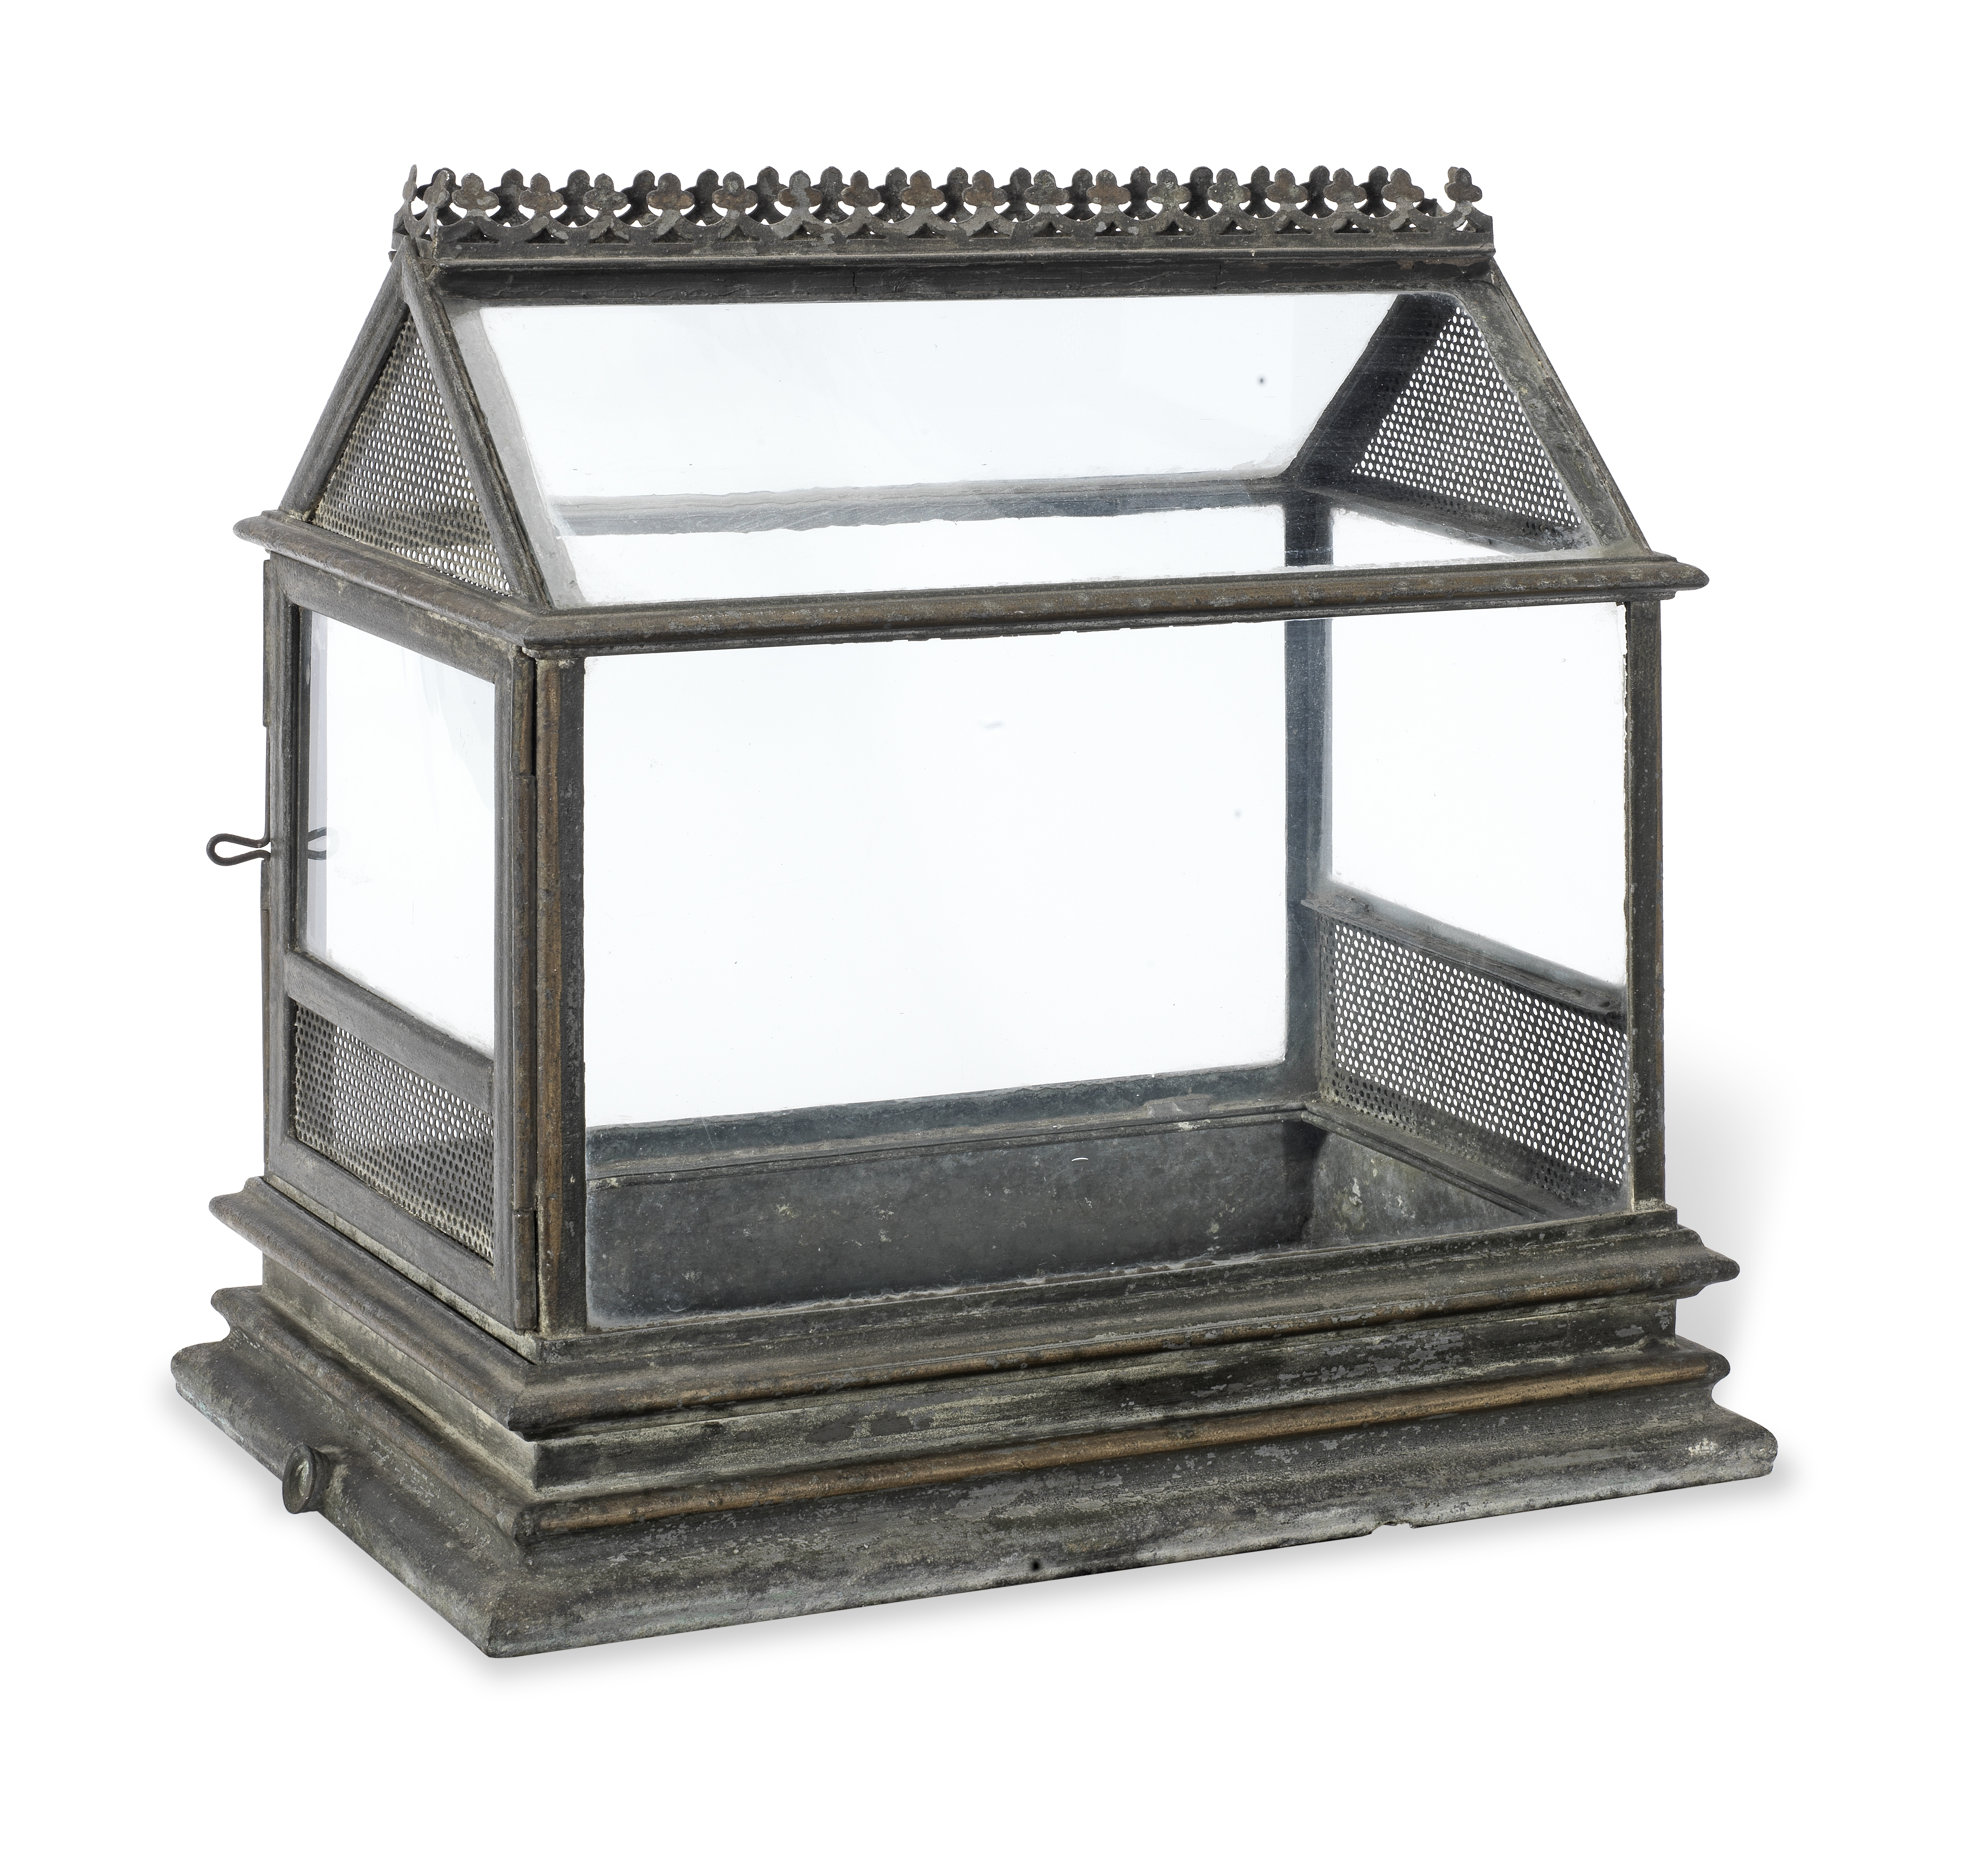 A mid Victorian japanned tin terrarium in the Gothic revival style 35cm high, 34cm wide, 22cm deep